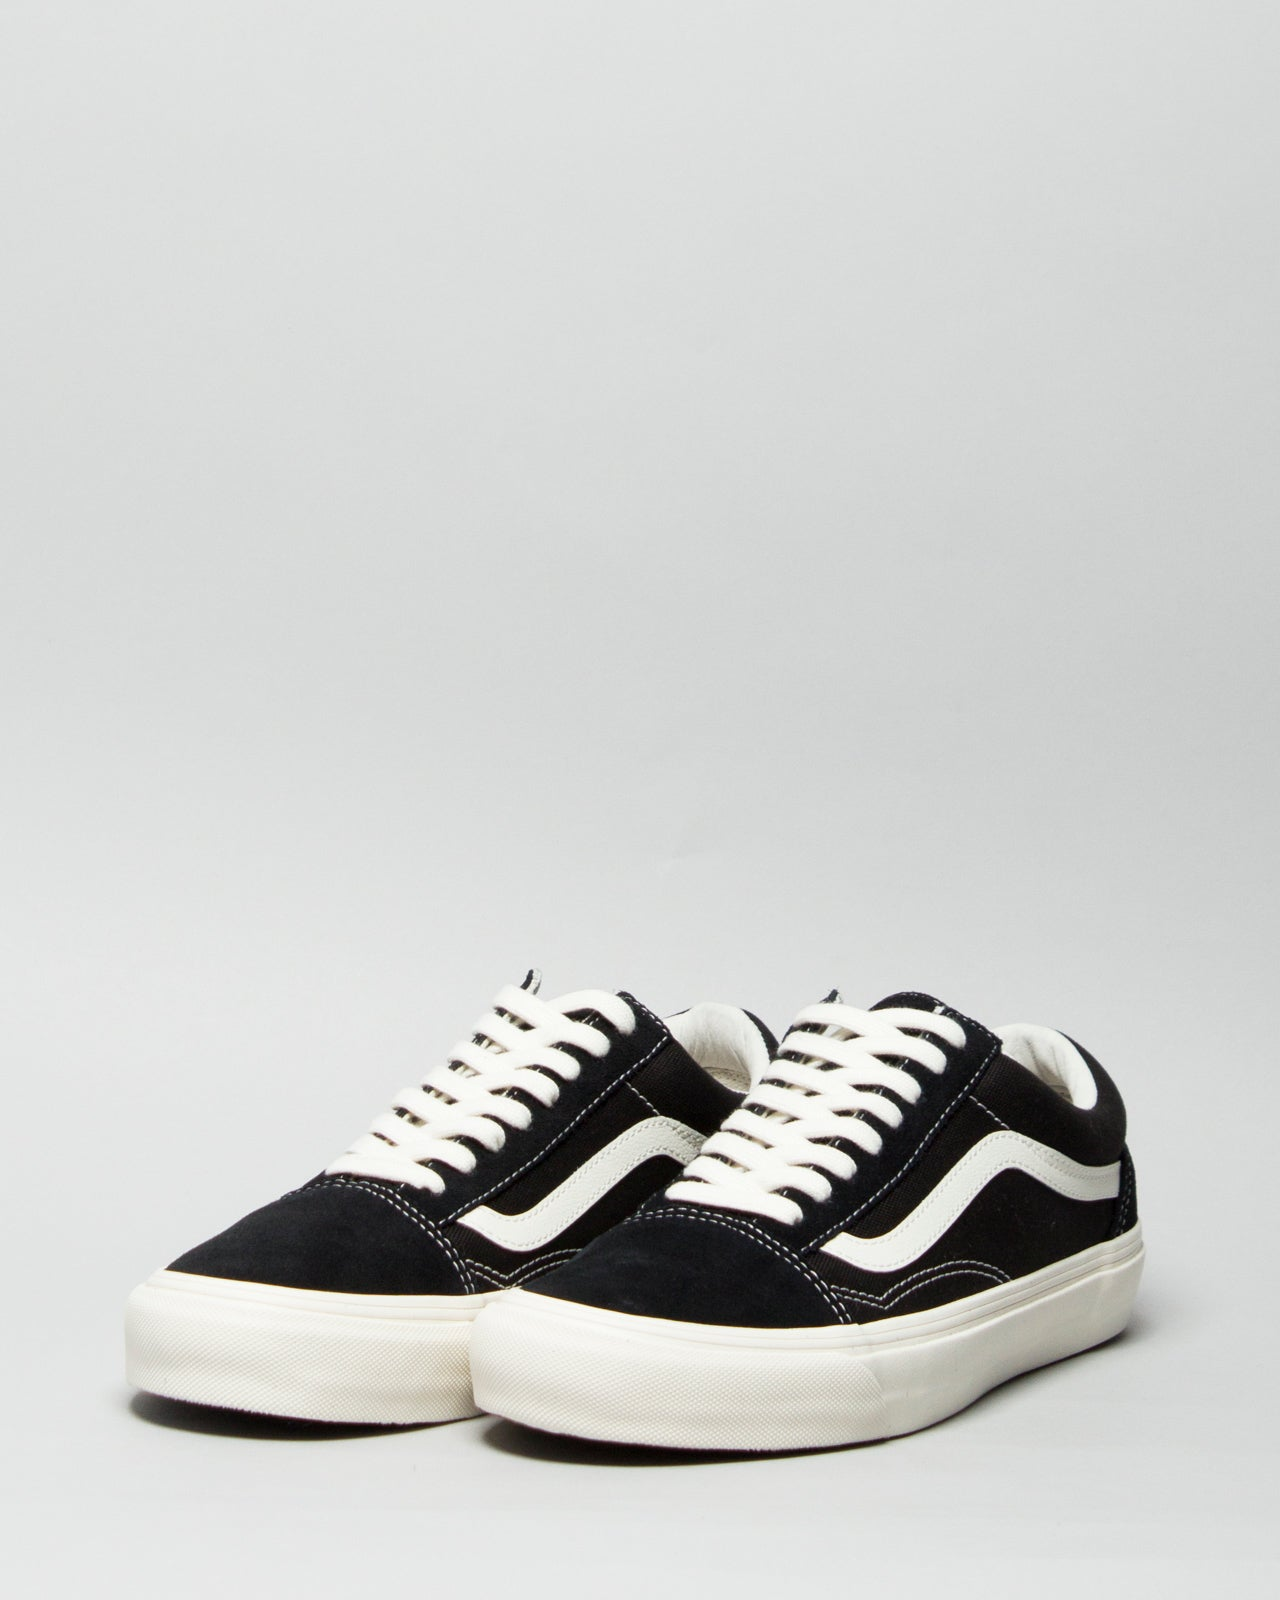 63cfdad027 OG Old Skool LX (Suede Canvas) Black Marshmallow – LIKELIHOOD